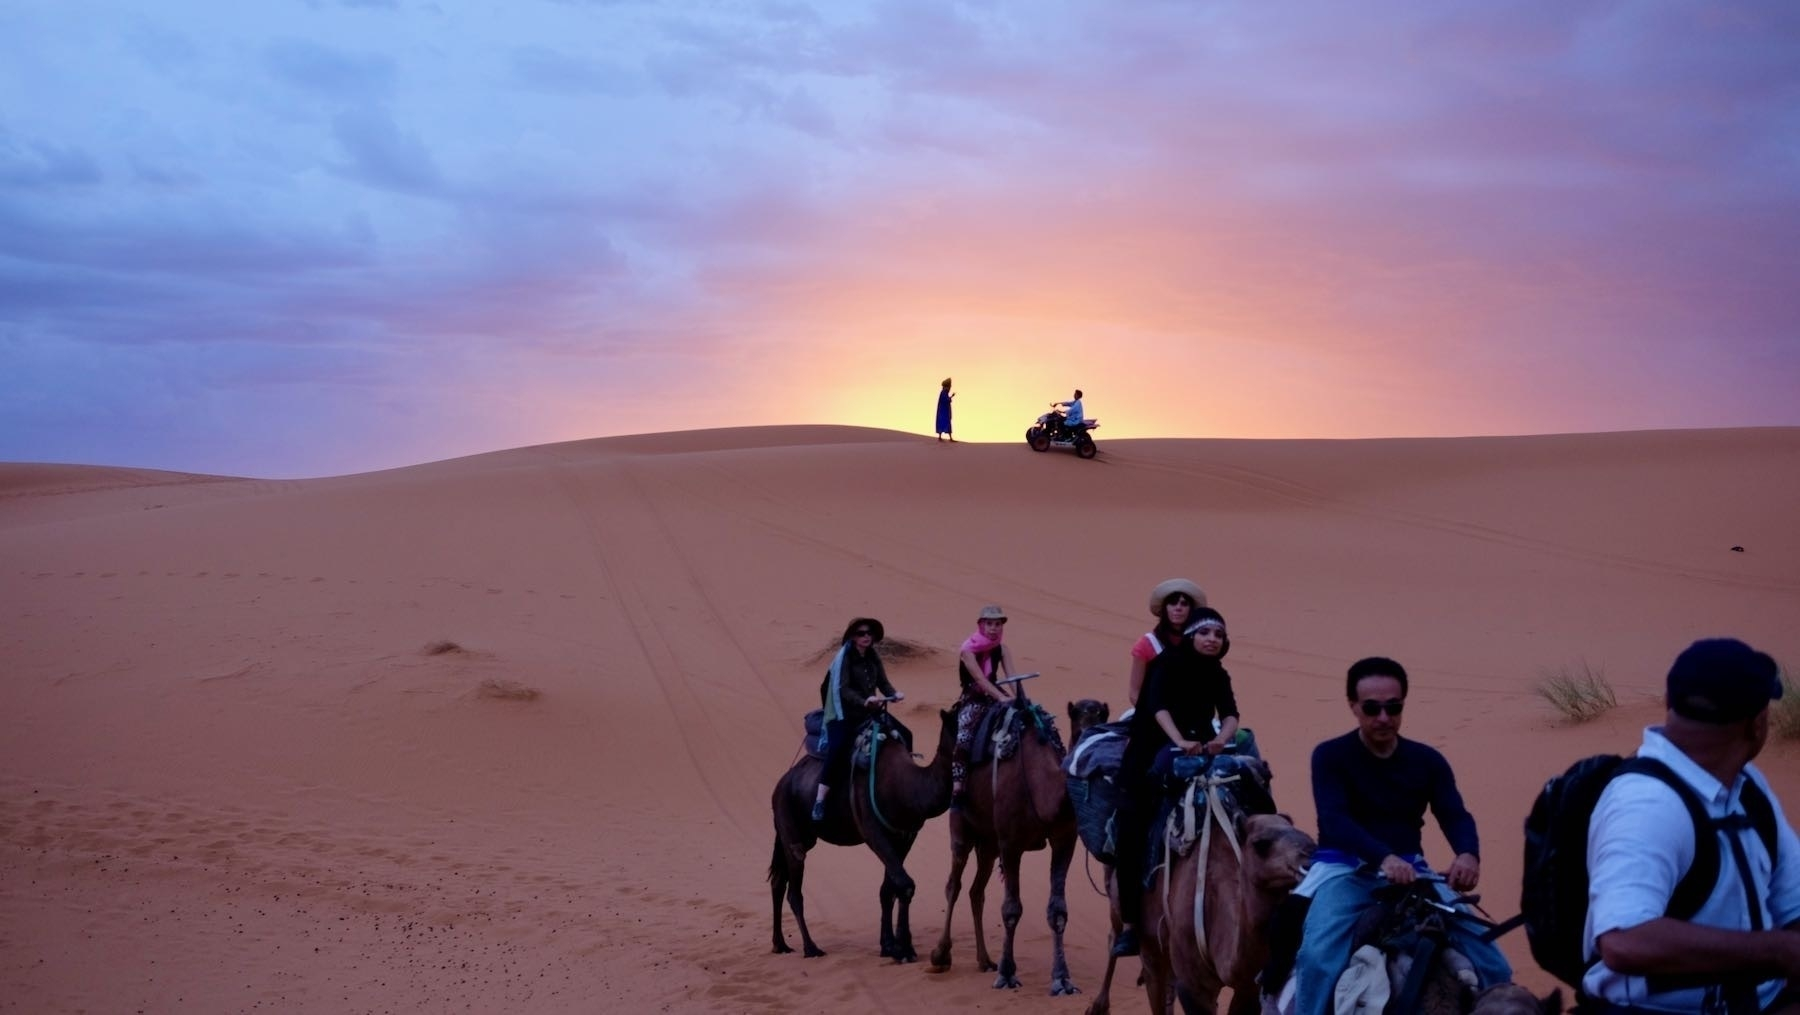 Sunrise in the desert with camel train.